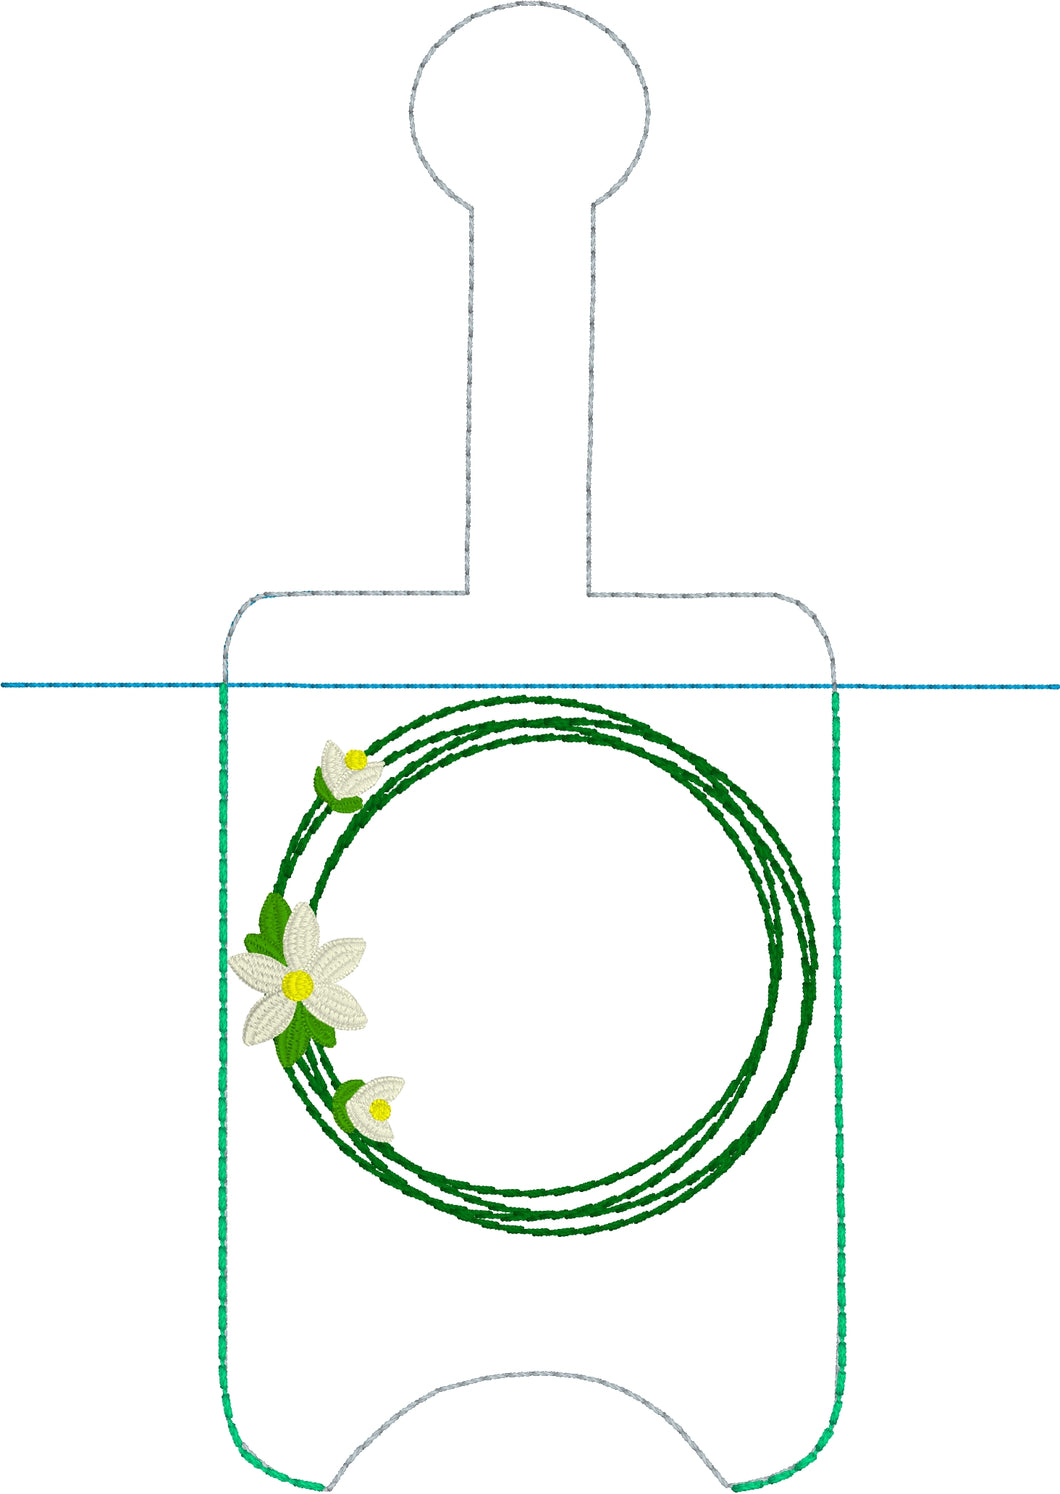 Rain Lily Monogram Hand Sanitizer Holder Snap Tab Version In the Hoop Embroidery Project 3 oz DT for 5x7 hoops